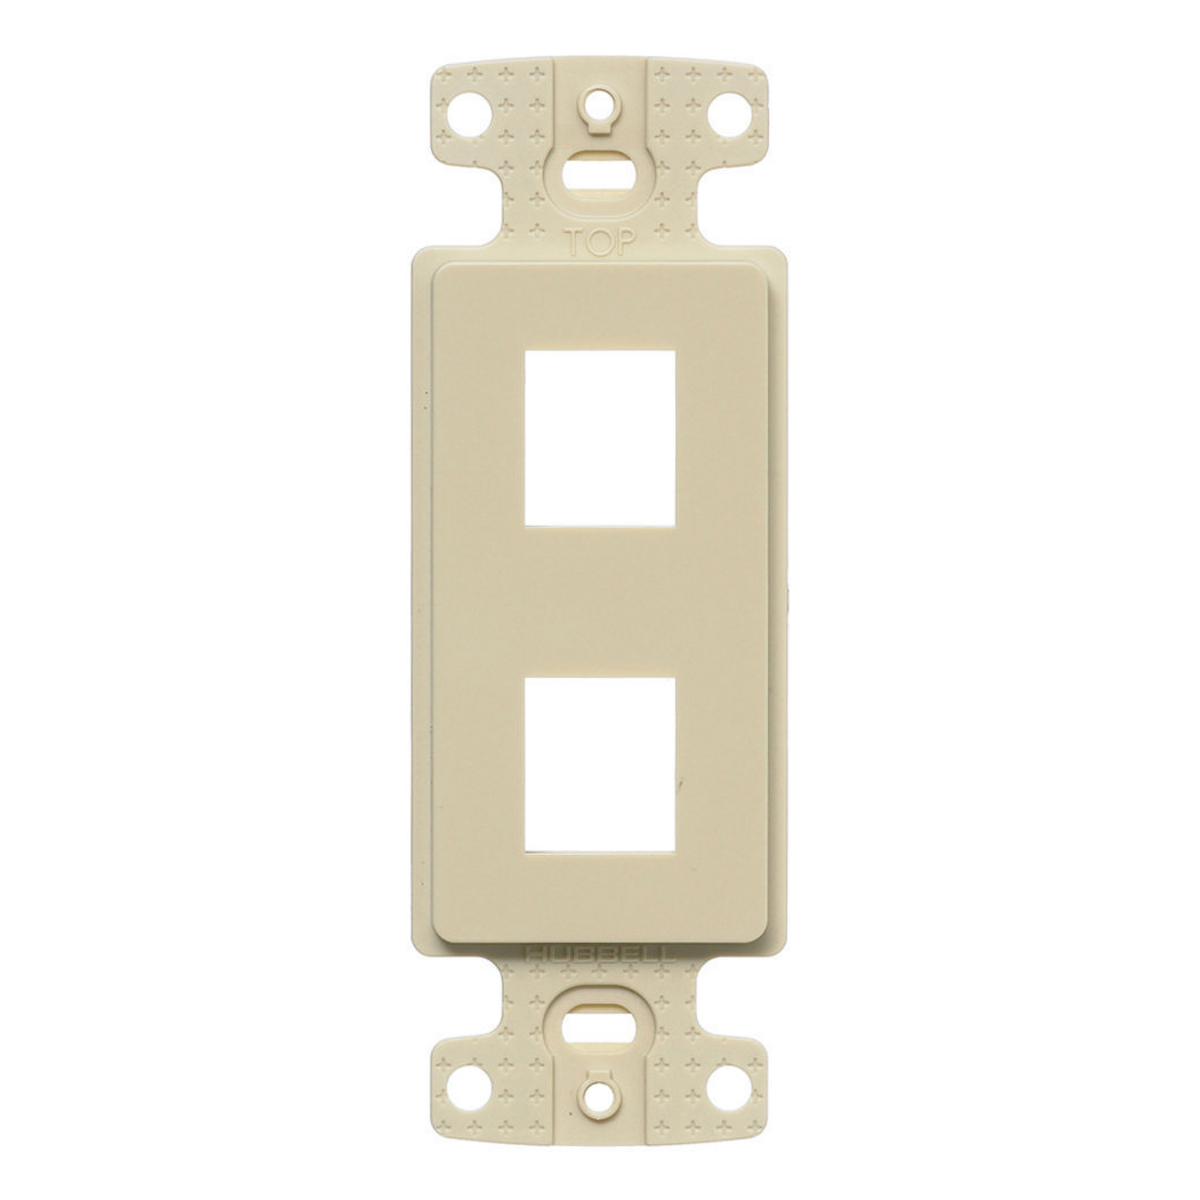 Hubbell NS612I 1-Gang Ivory Thermoplastic 2-Port Data Communication Face Plate